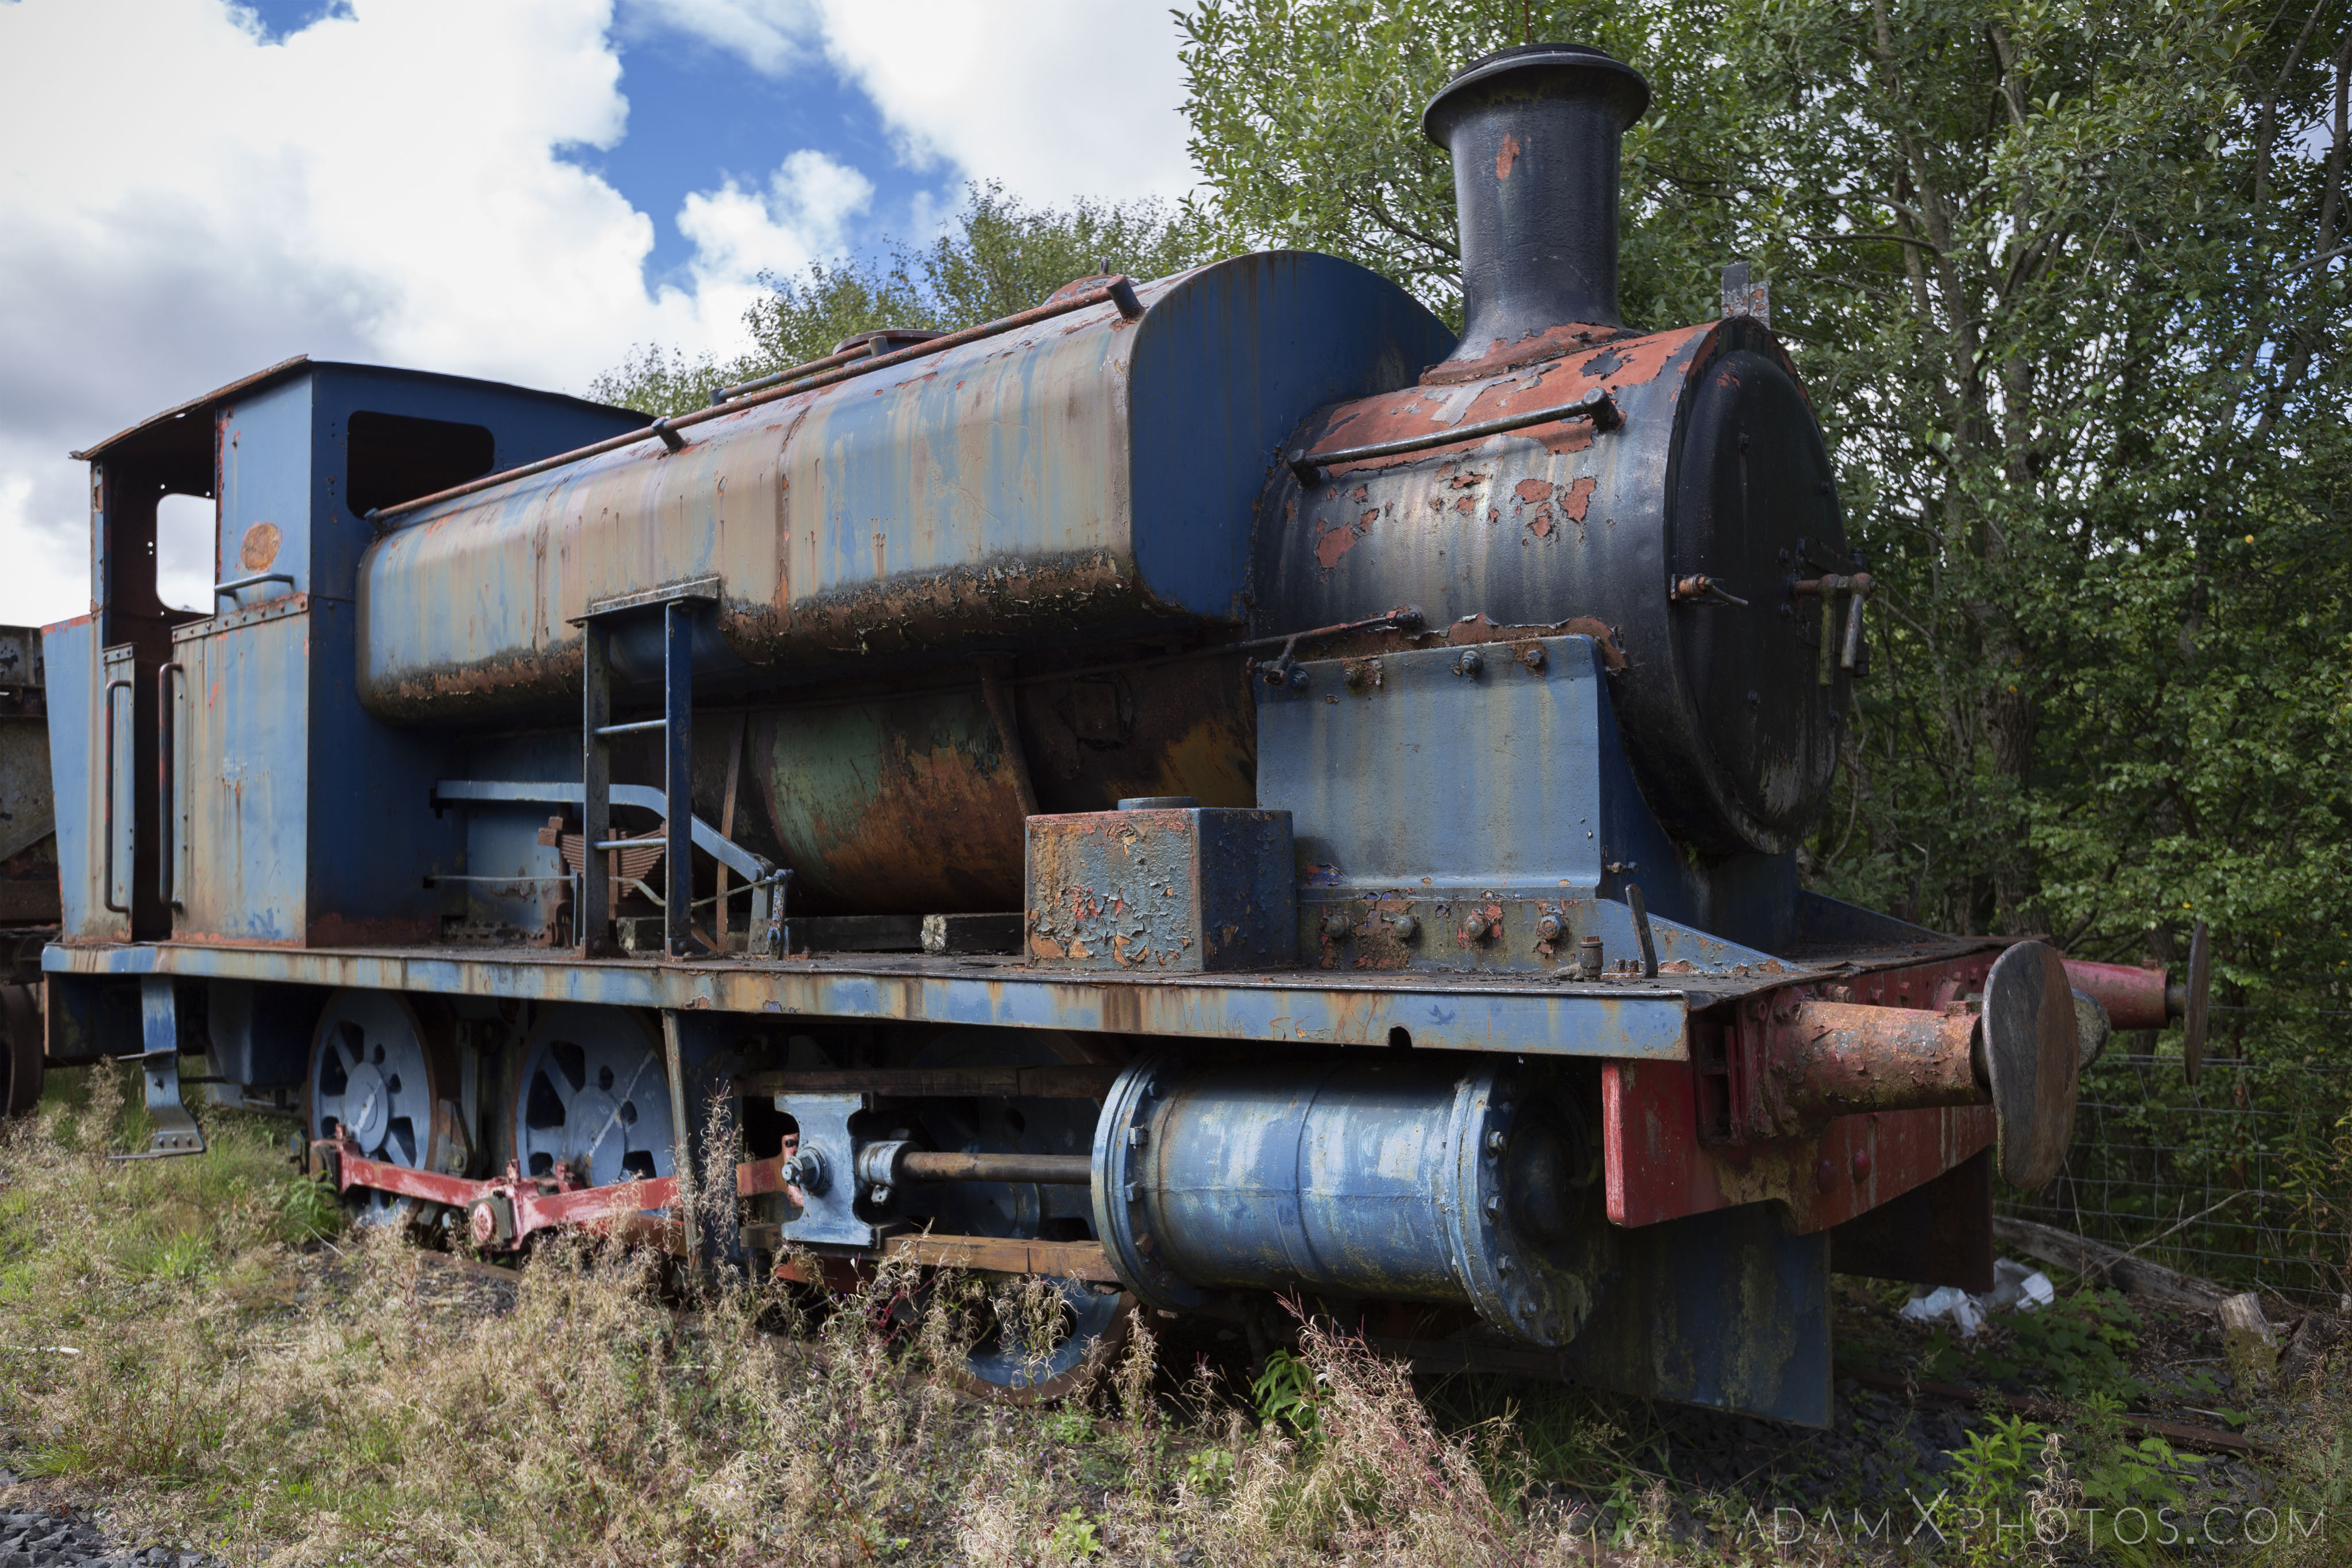 Thomas the tank engine Abandoned Trains Waterside Dunaskin Adam X Urbex Urban Exploration Access 2018 Abandoned decay lost forgotten derelict location creepy haunting eerie